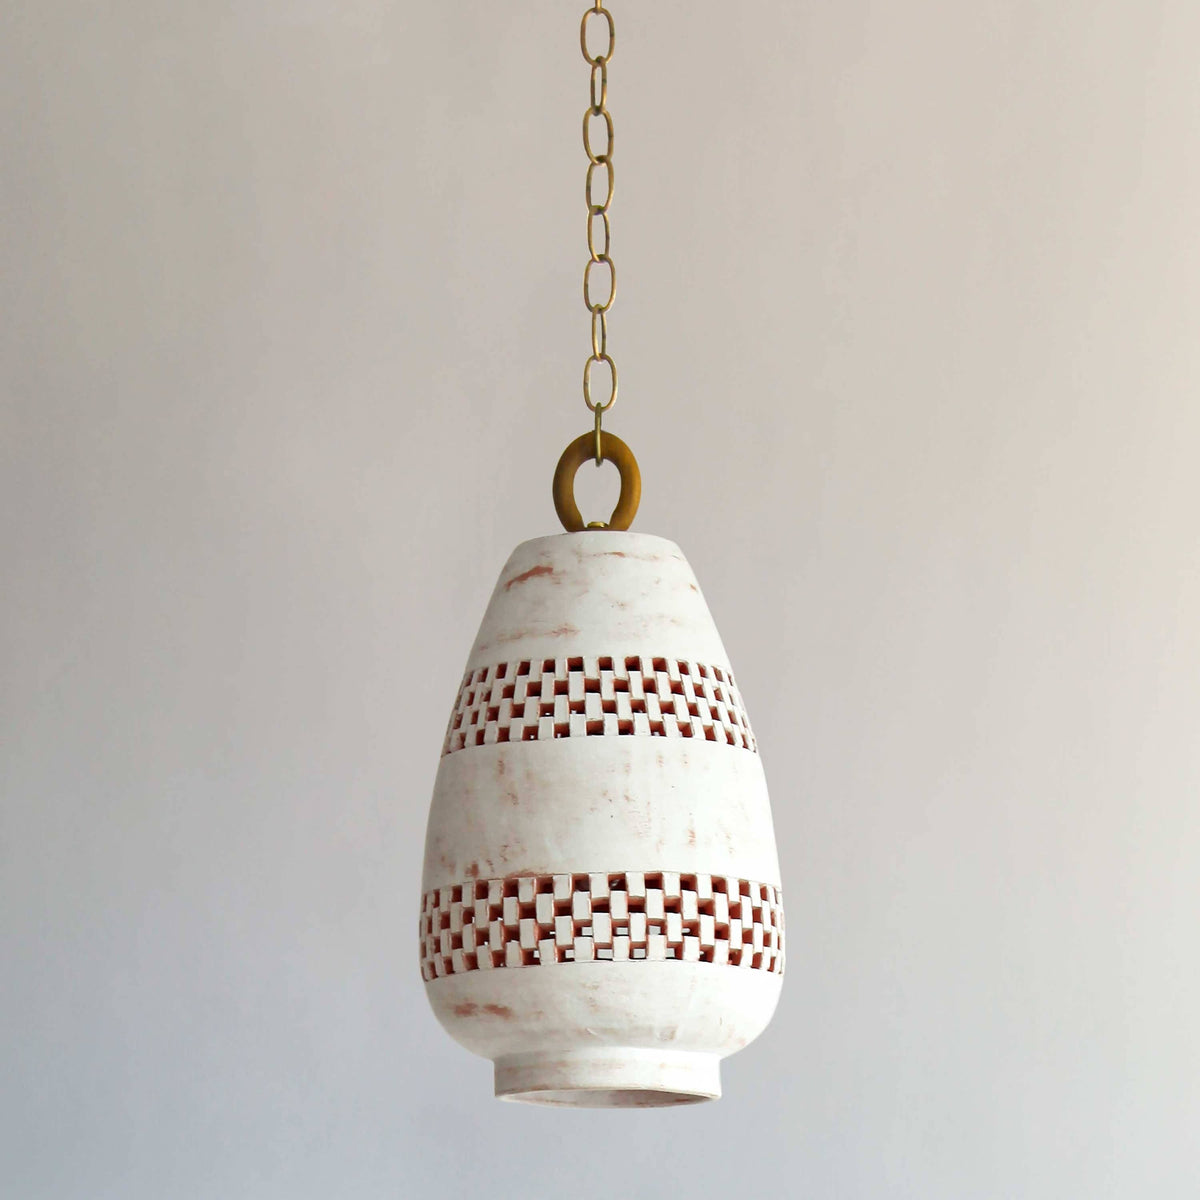 Atzompa Lighting - Ajedrez Pendant, size A